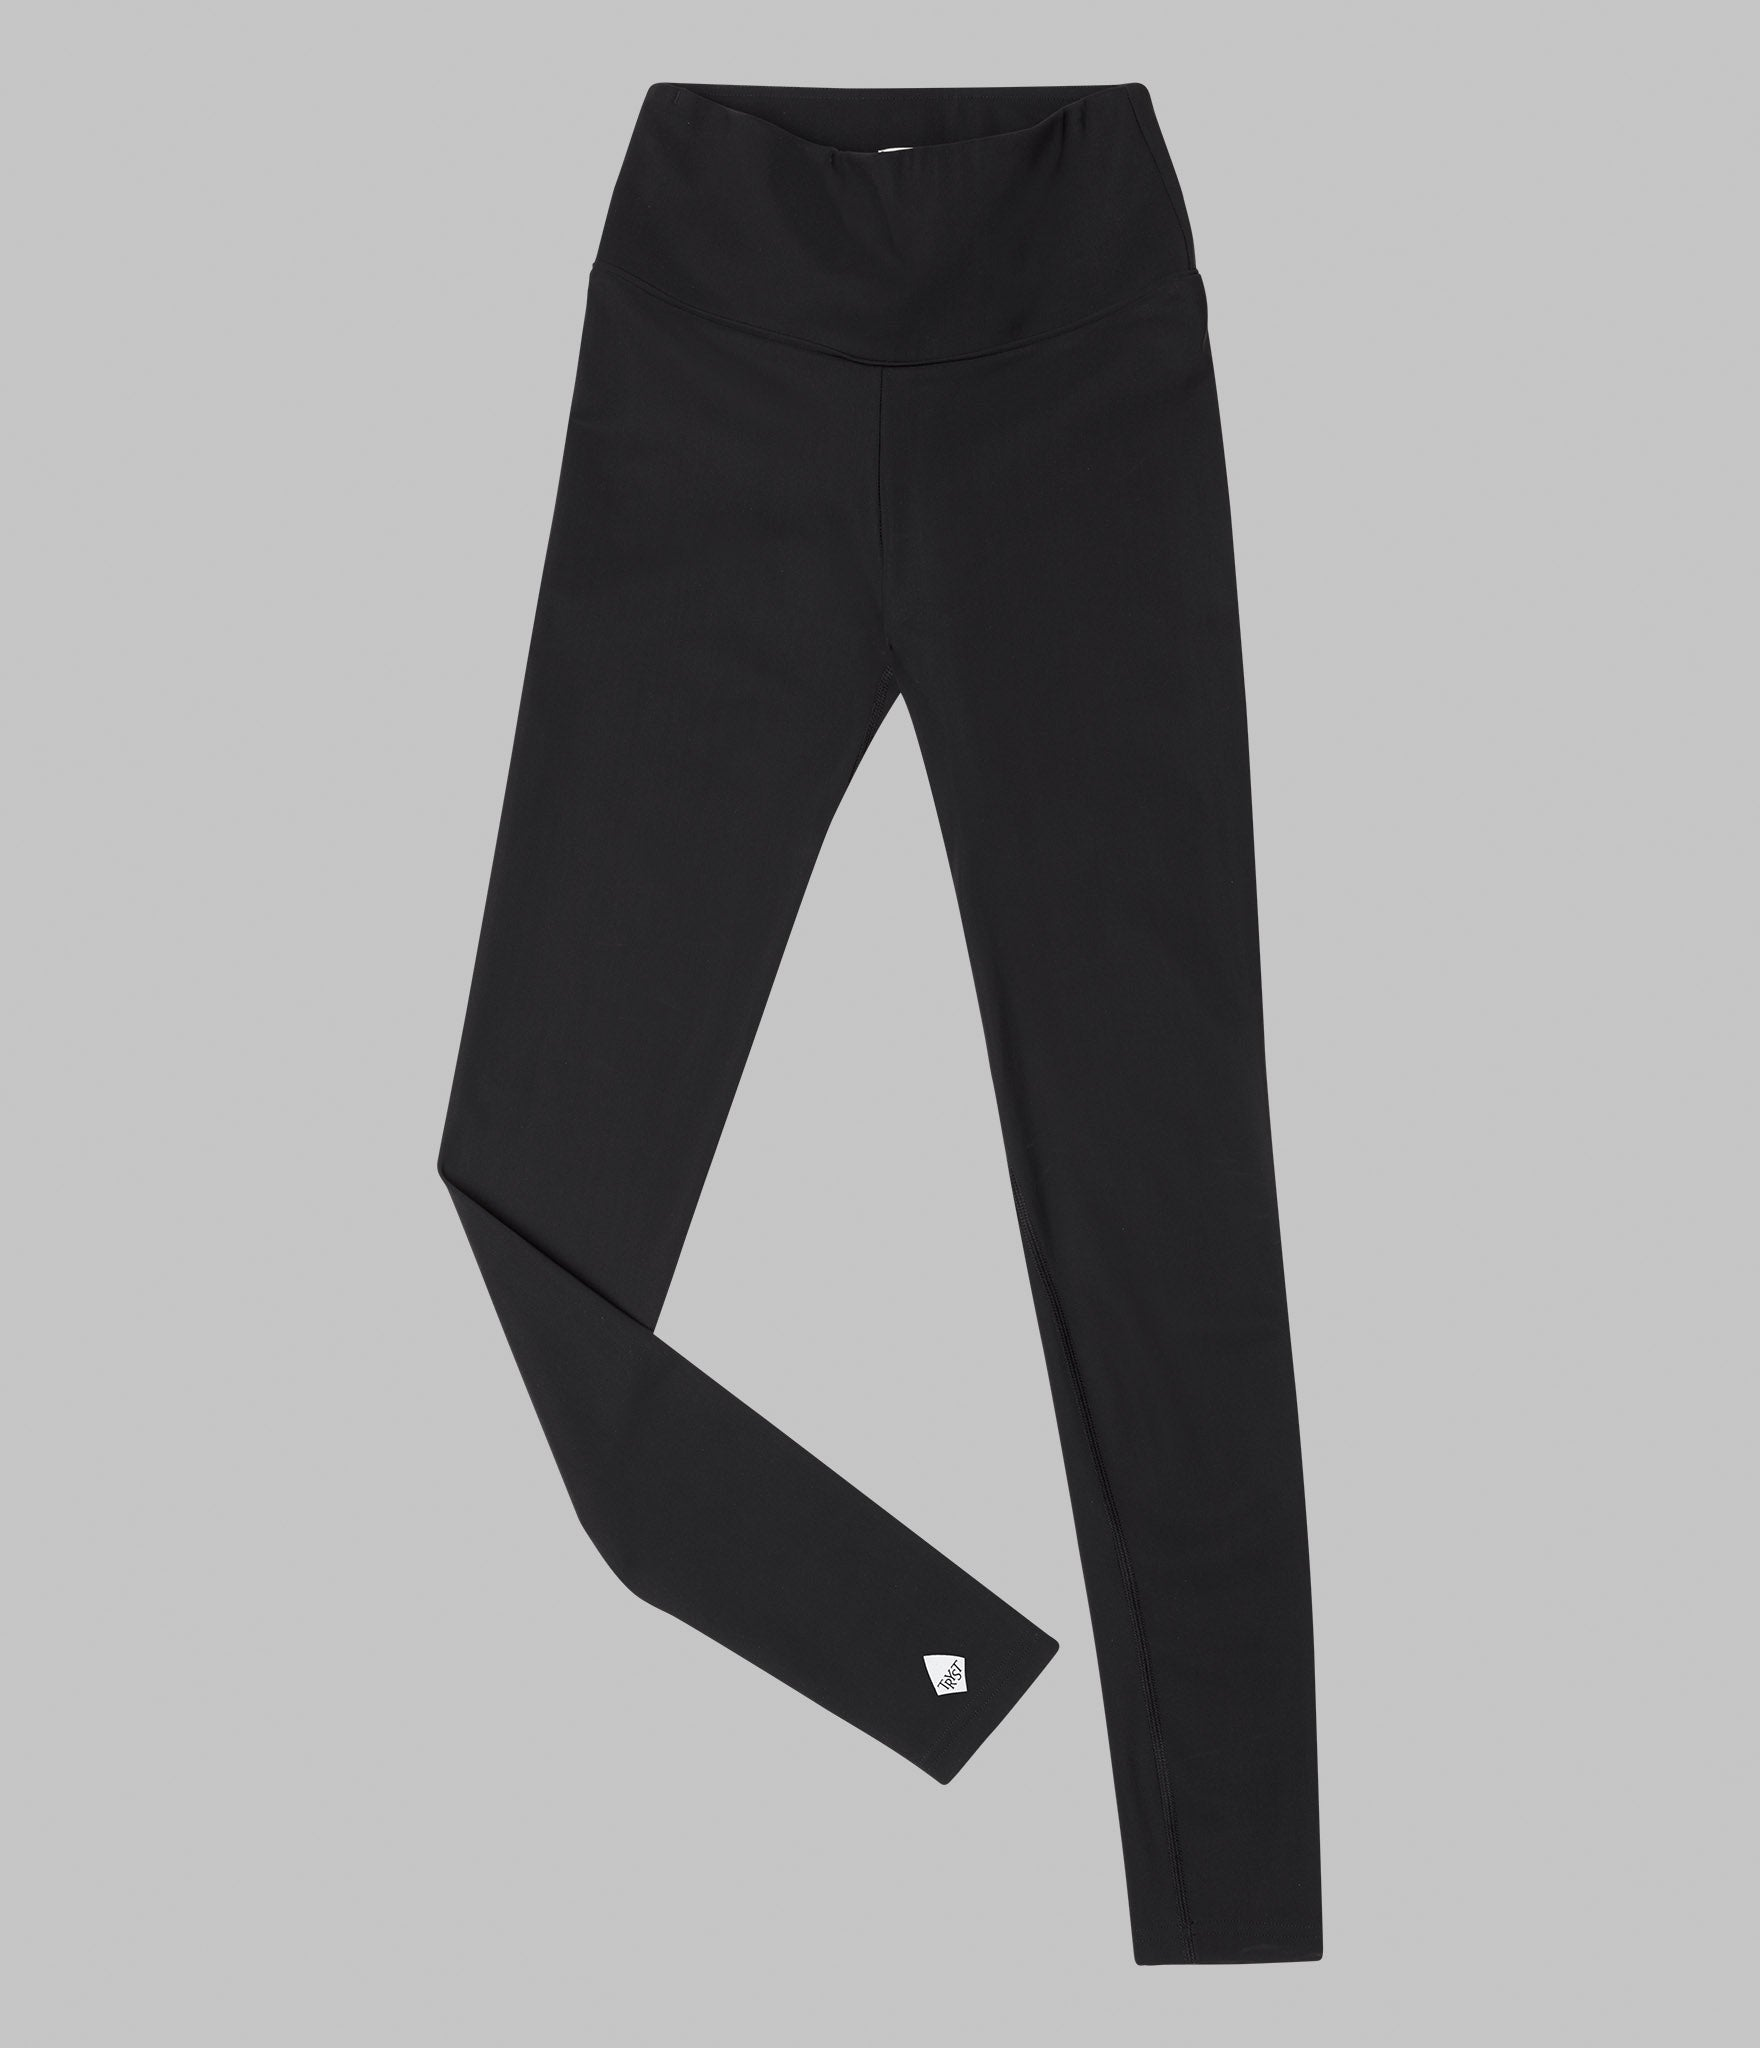 Denver Leggings</br>Black